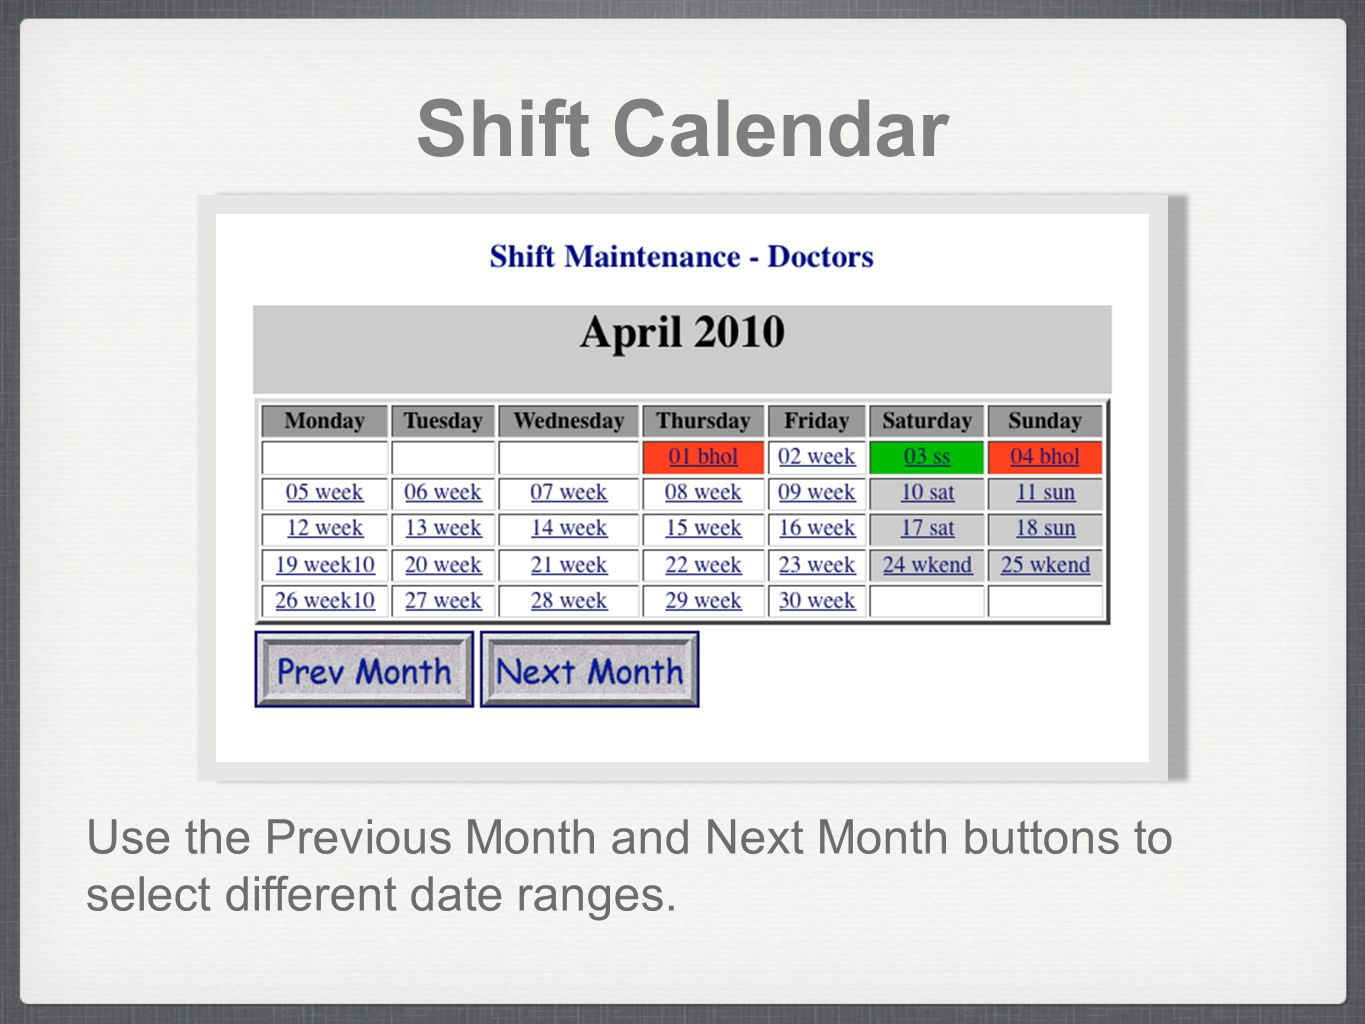 Shift Calendar Use the Previous Month and Next Month buttons to select different date ranges.